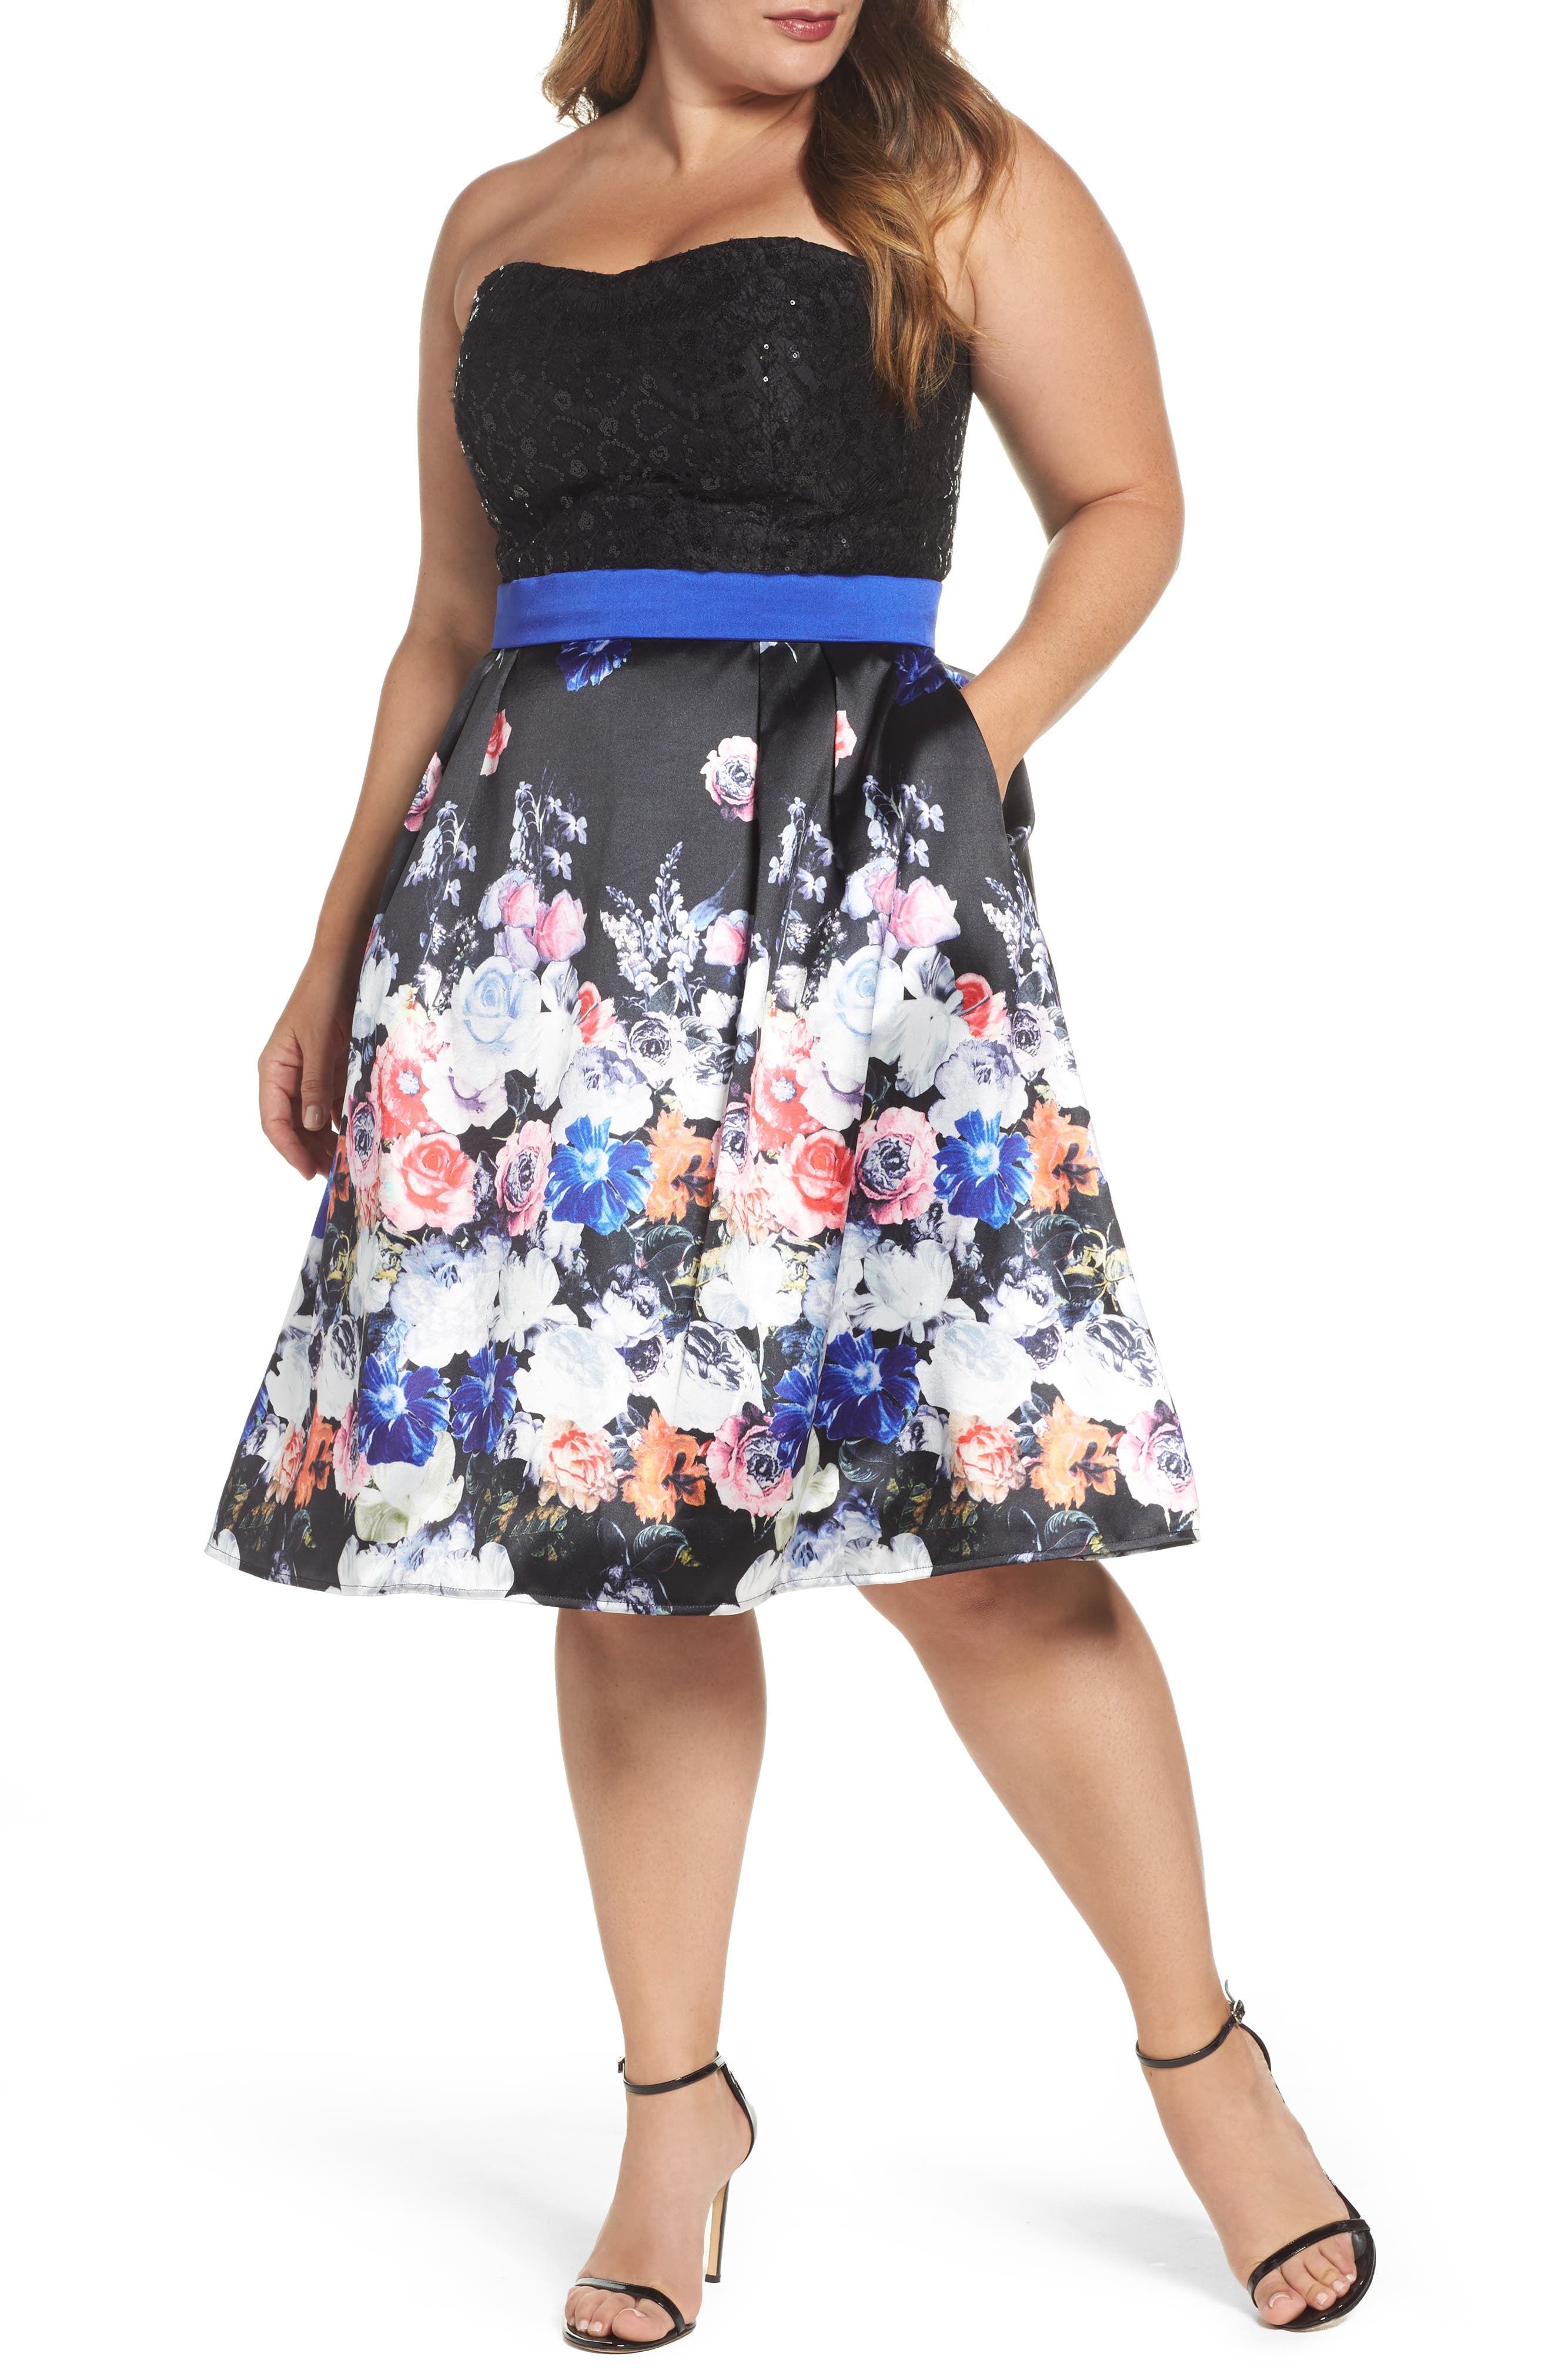 Floral Print Strapless Fit & Flare Dress,                             Main thumbnail 1, color,                             001